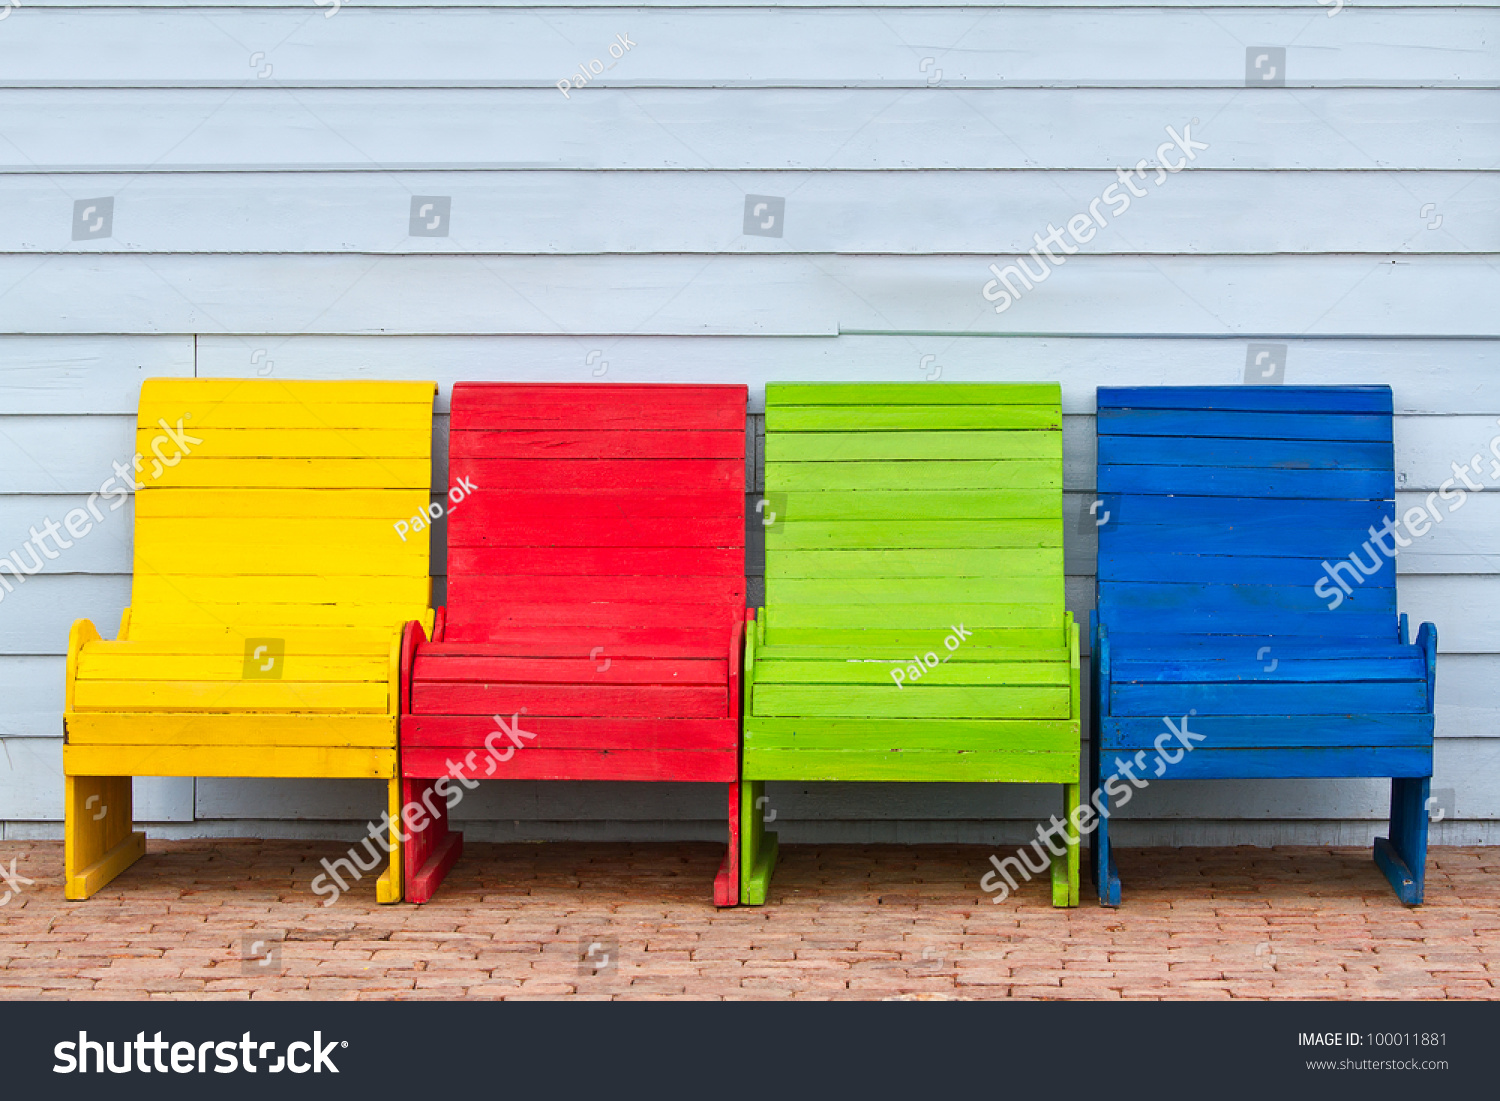 Colorful Wooden Chairs Stock Photo 100011881  Shutterstock